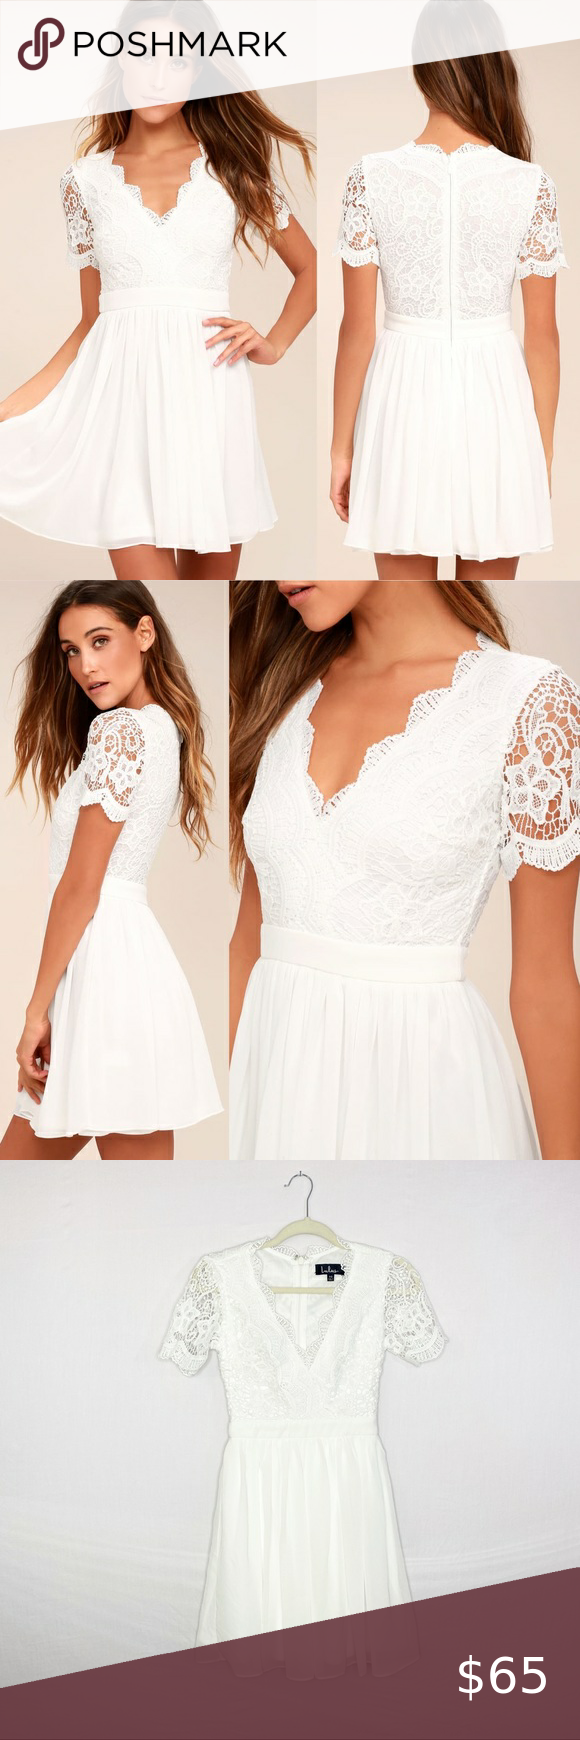 Lulu S Angel In Disguise White Lace Skater Dress Lulu S Angel In Disguise White Lace Skater Dress L Lace Skater Dress White Lace Skater Dress Blush Lace Dress [ 1740 x 580 Pixel ]